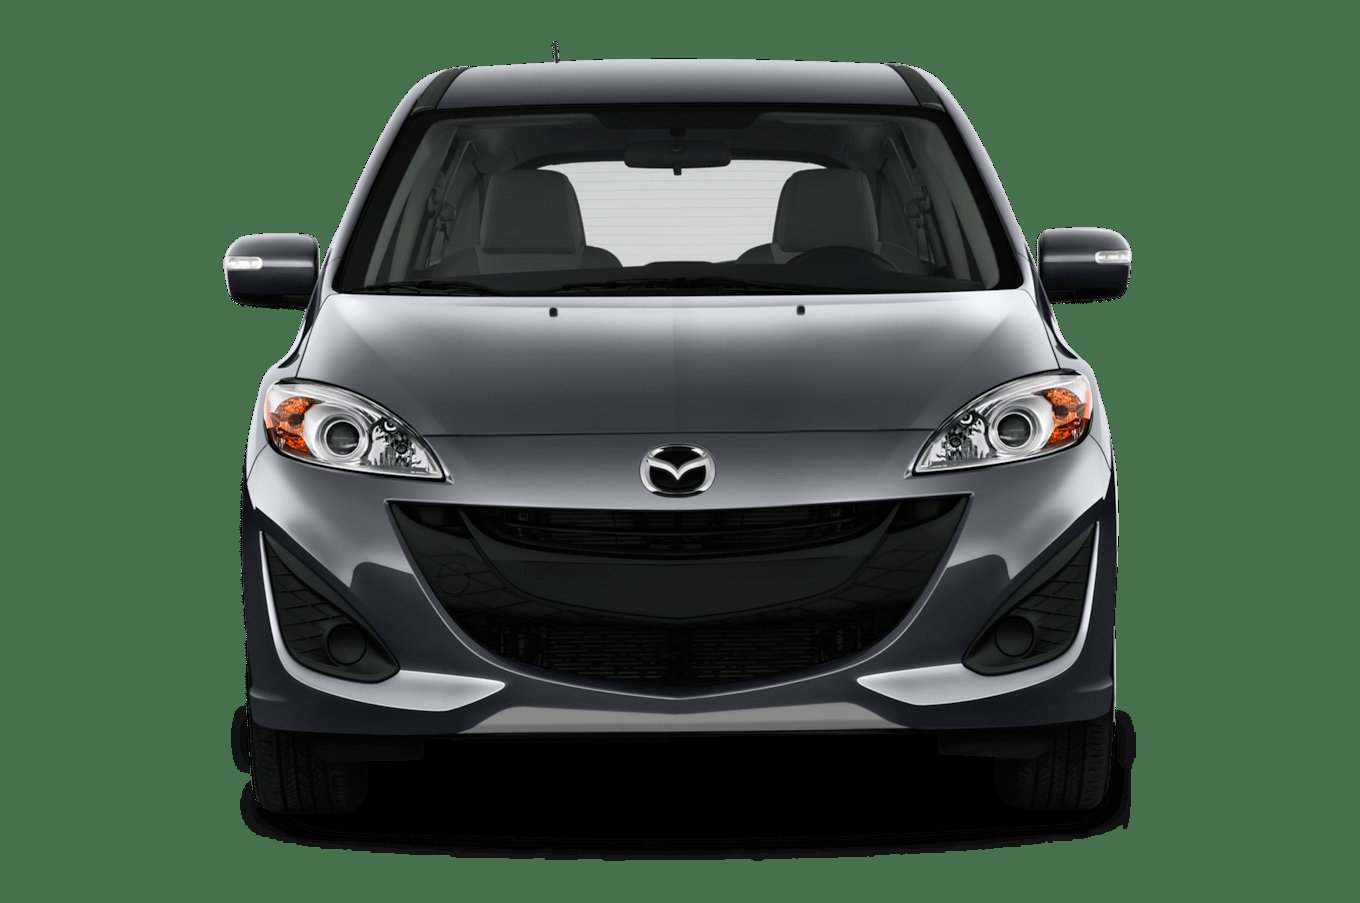 Latest 2015 Mazda5 Free Download